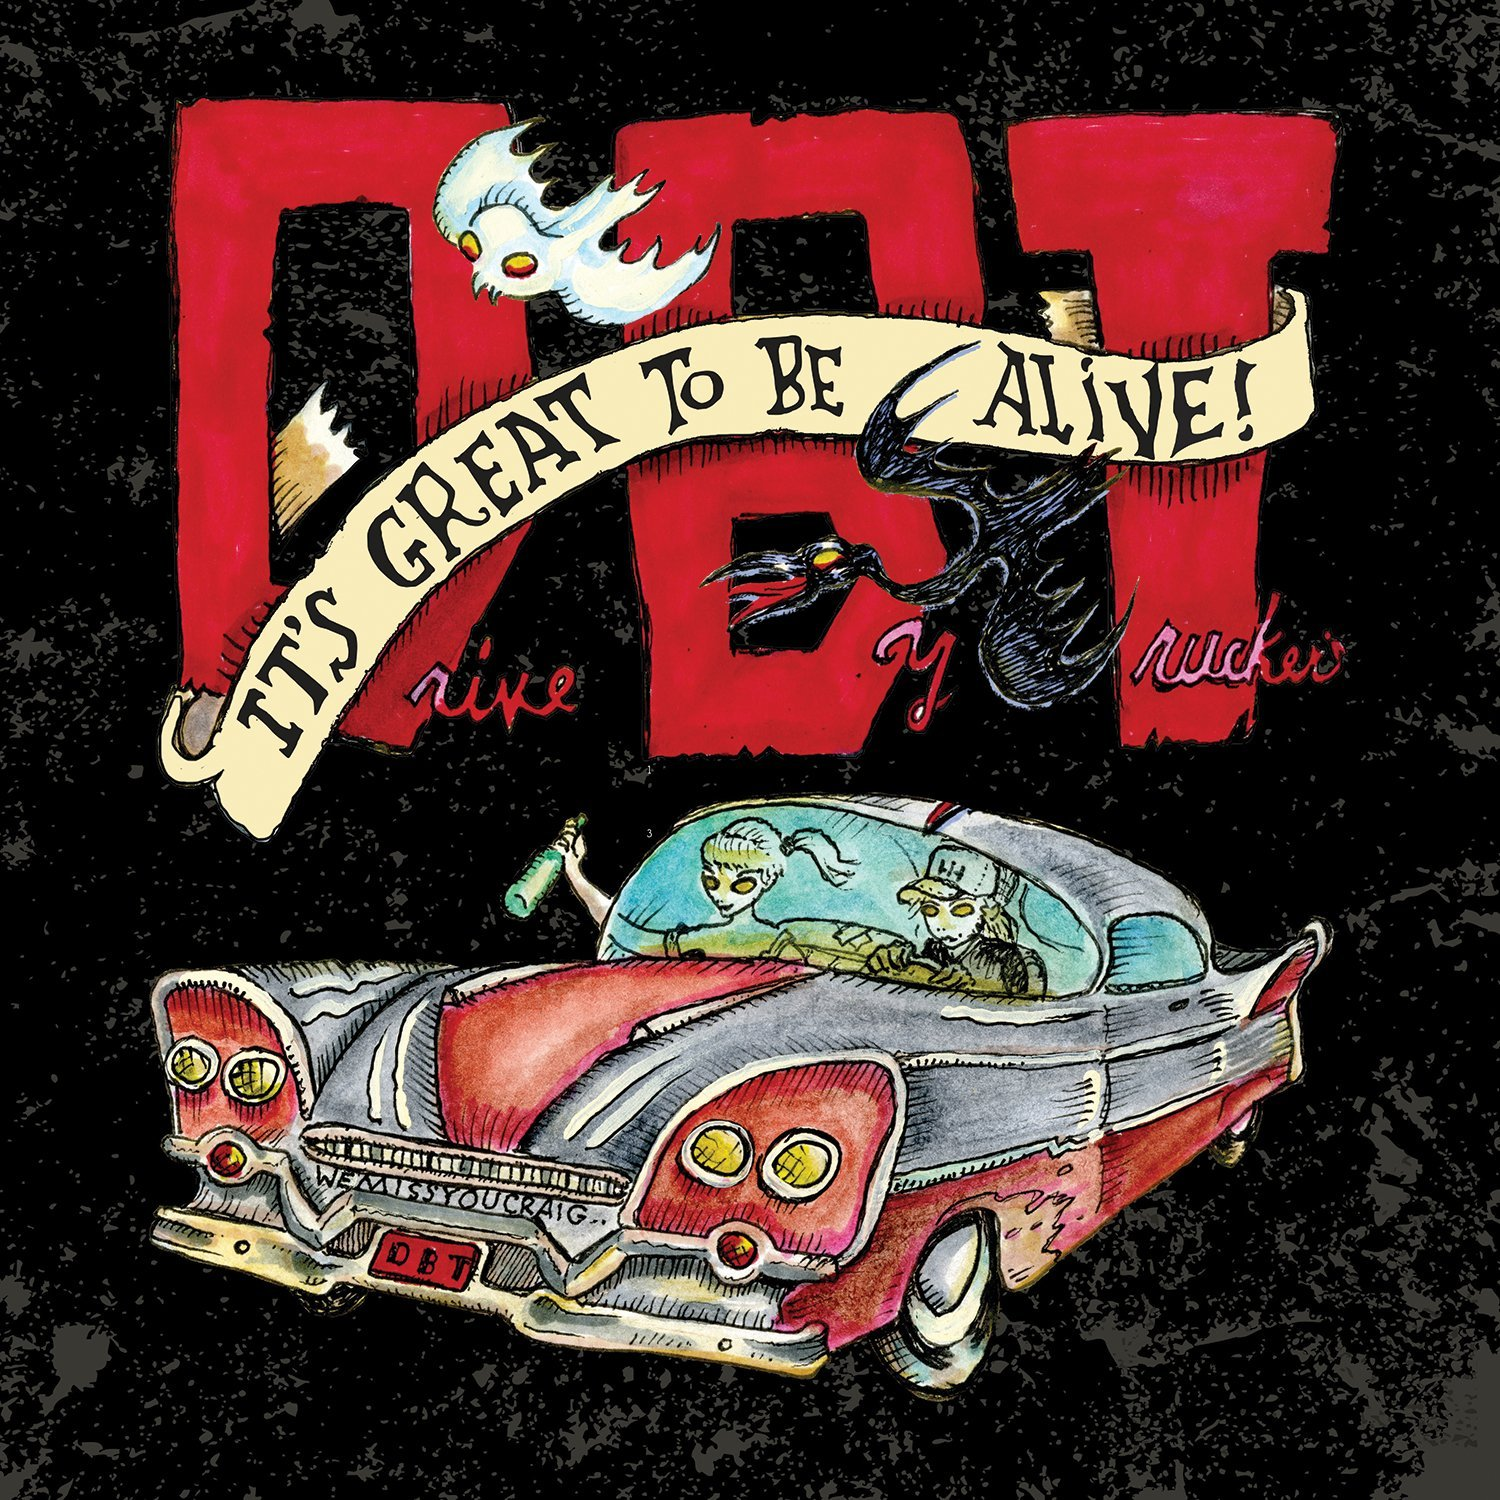 Drive-By Truckers: It's Great To Be Alive! [Album Review]